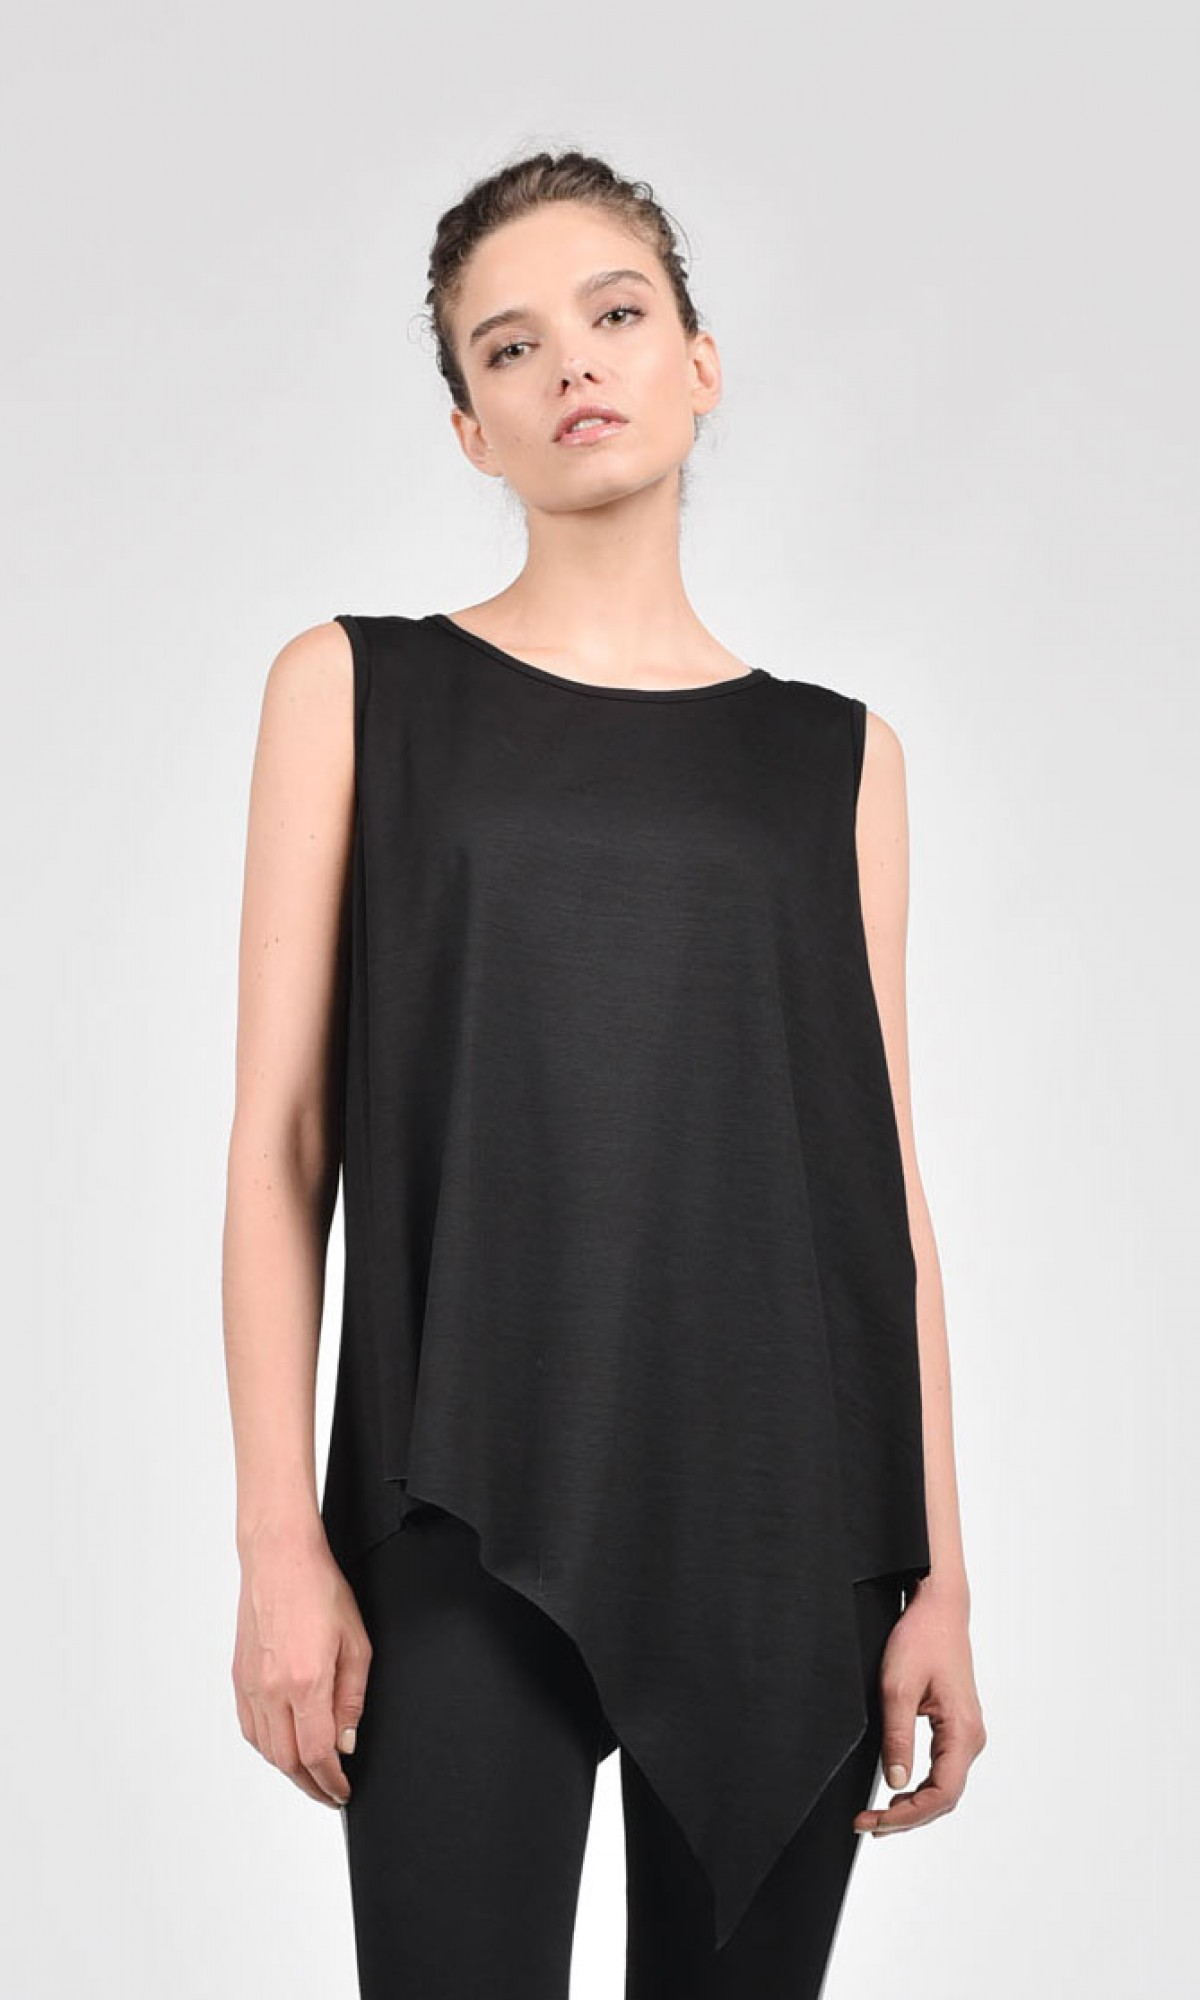 If you want to show off your arms this Summer , then you have a unique opportunity to try on a lovely tunic top this hot season. You all know, summer months are all about tiny tank tops and skin baring shorts and skirts.